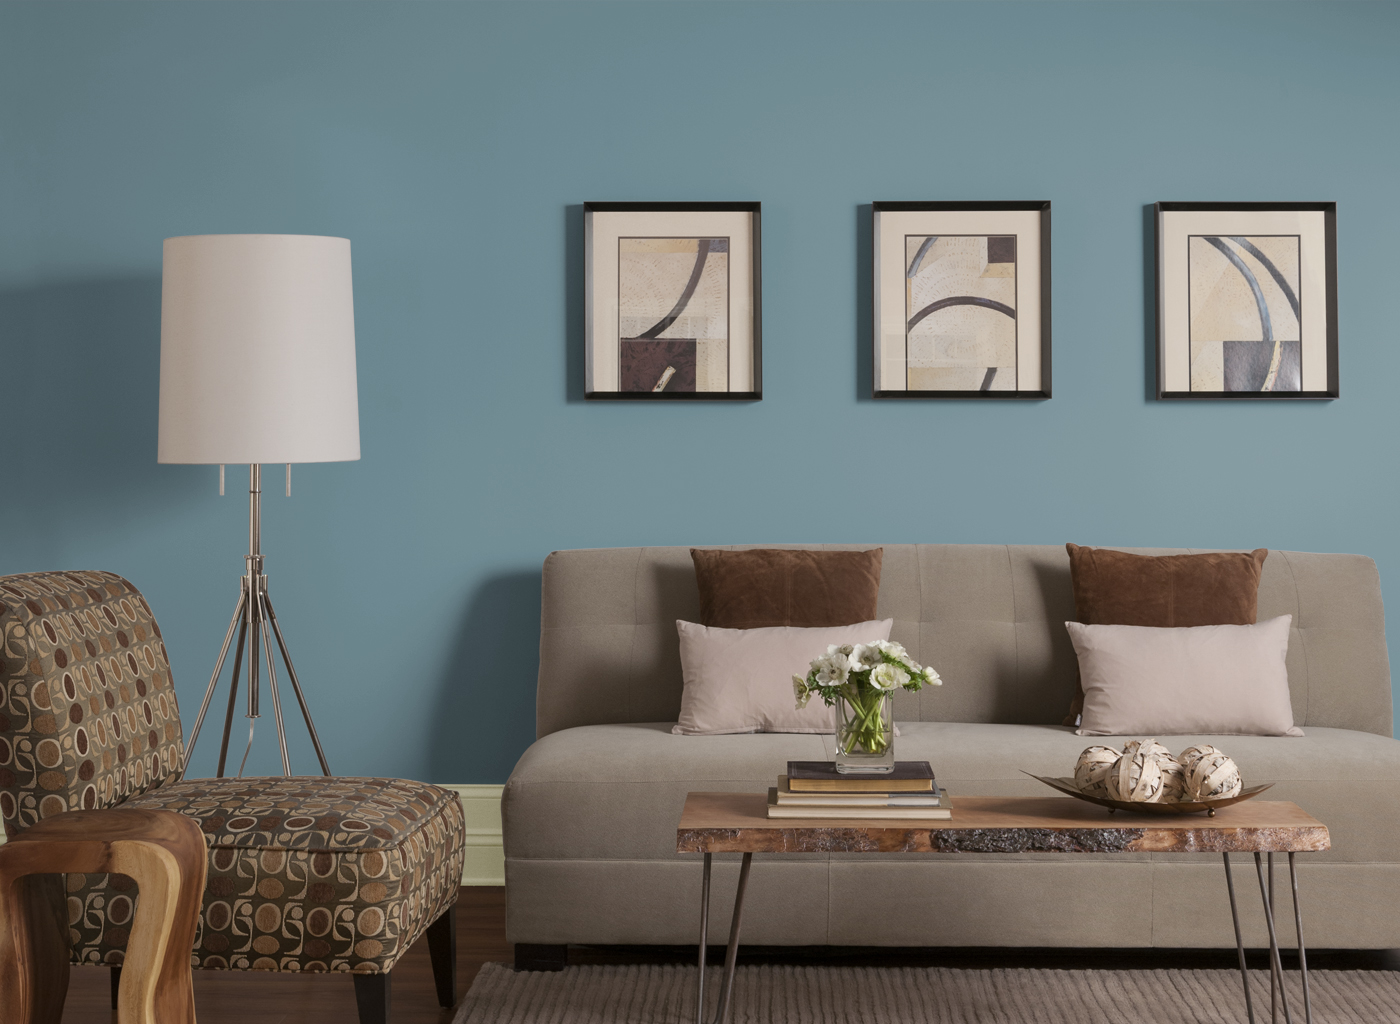 Sweet living room in brown and turquoise